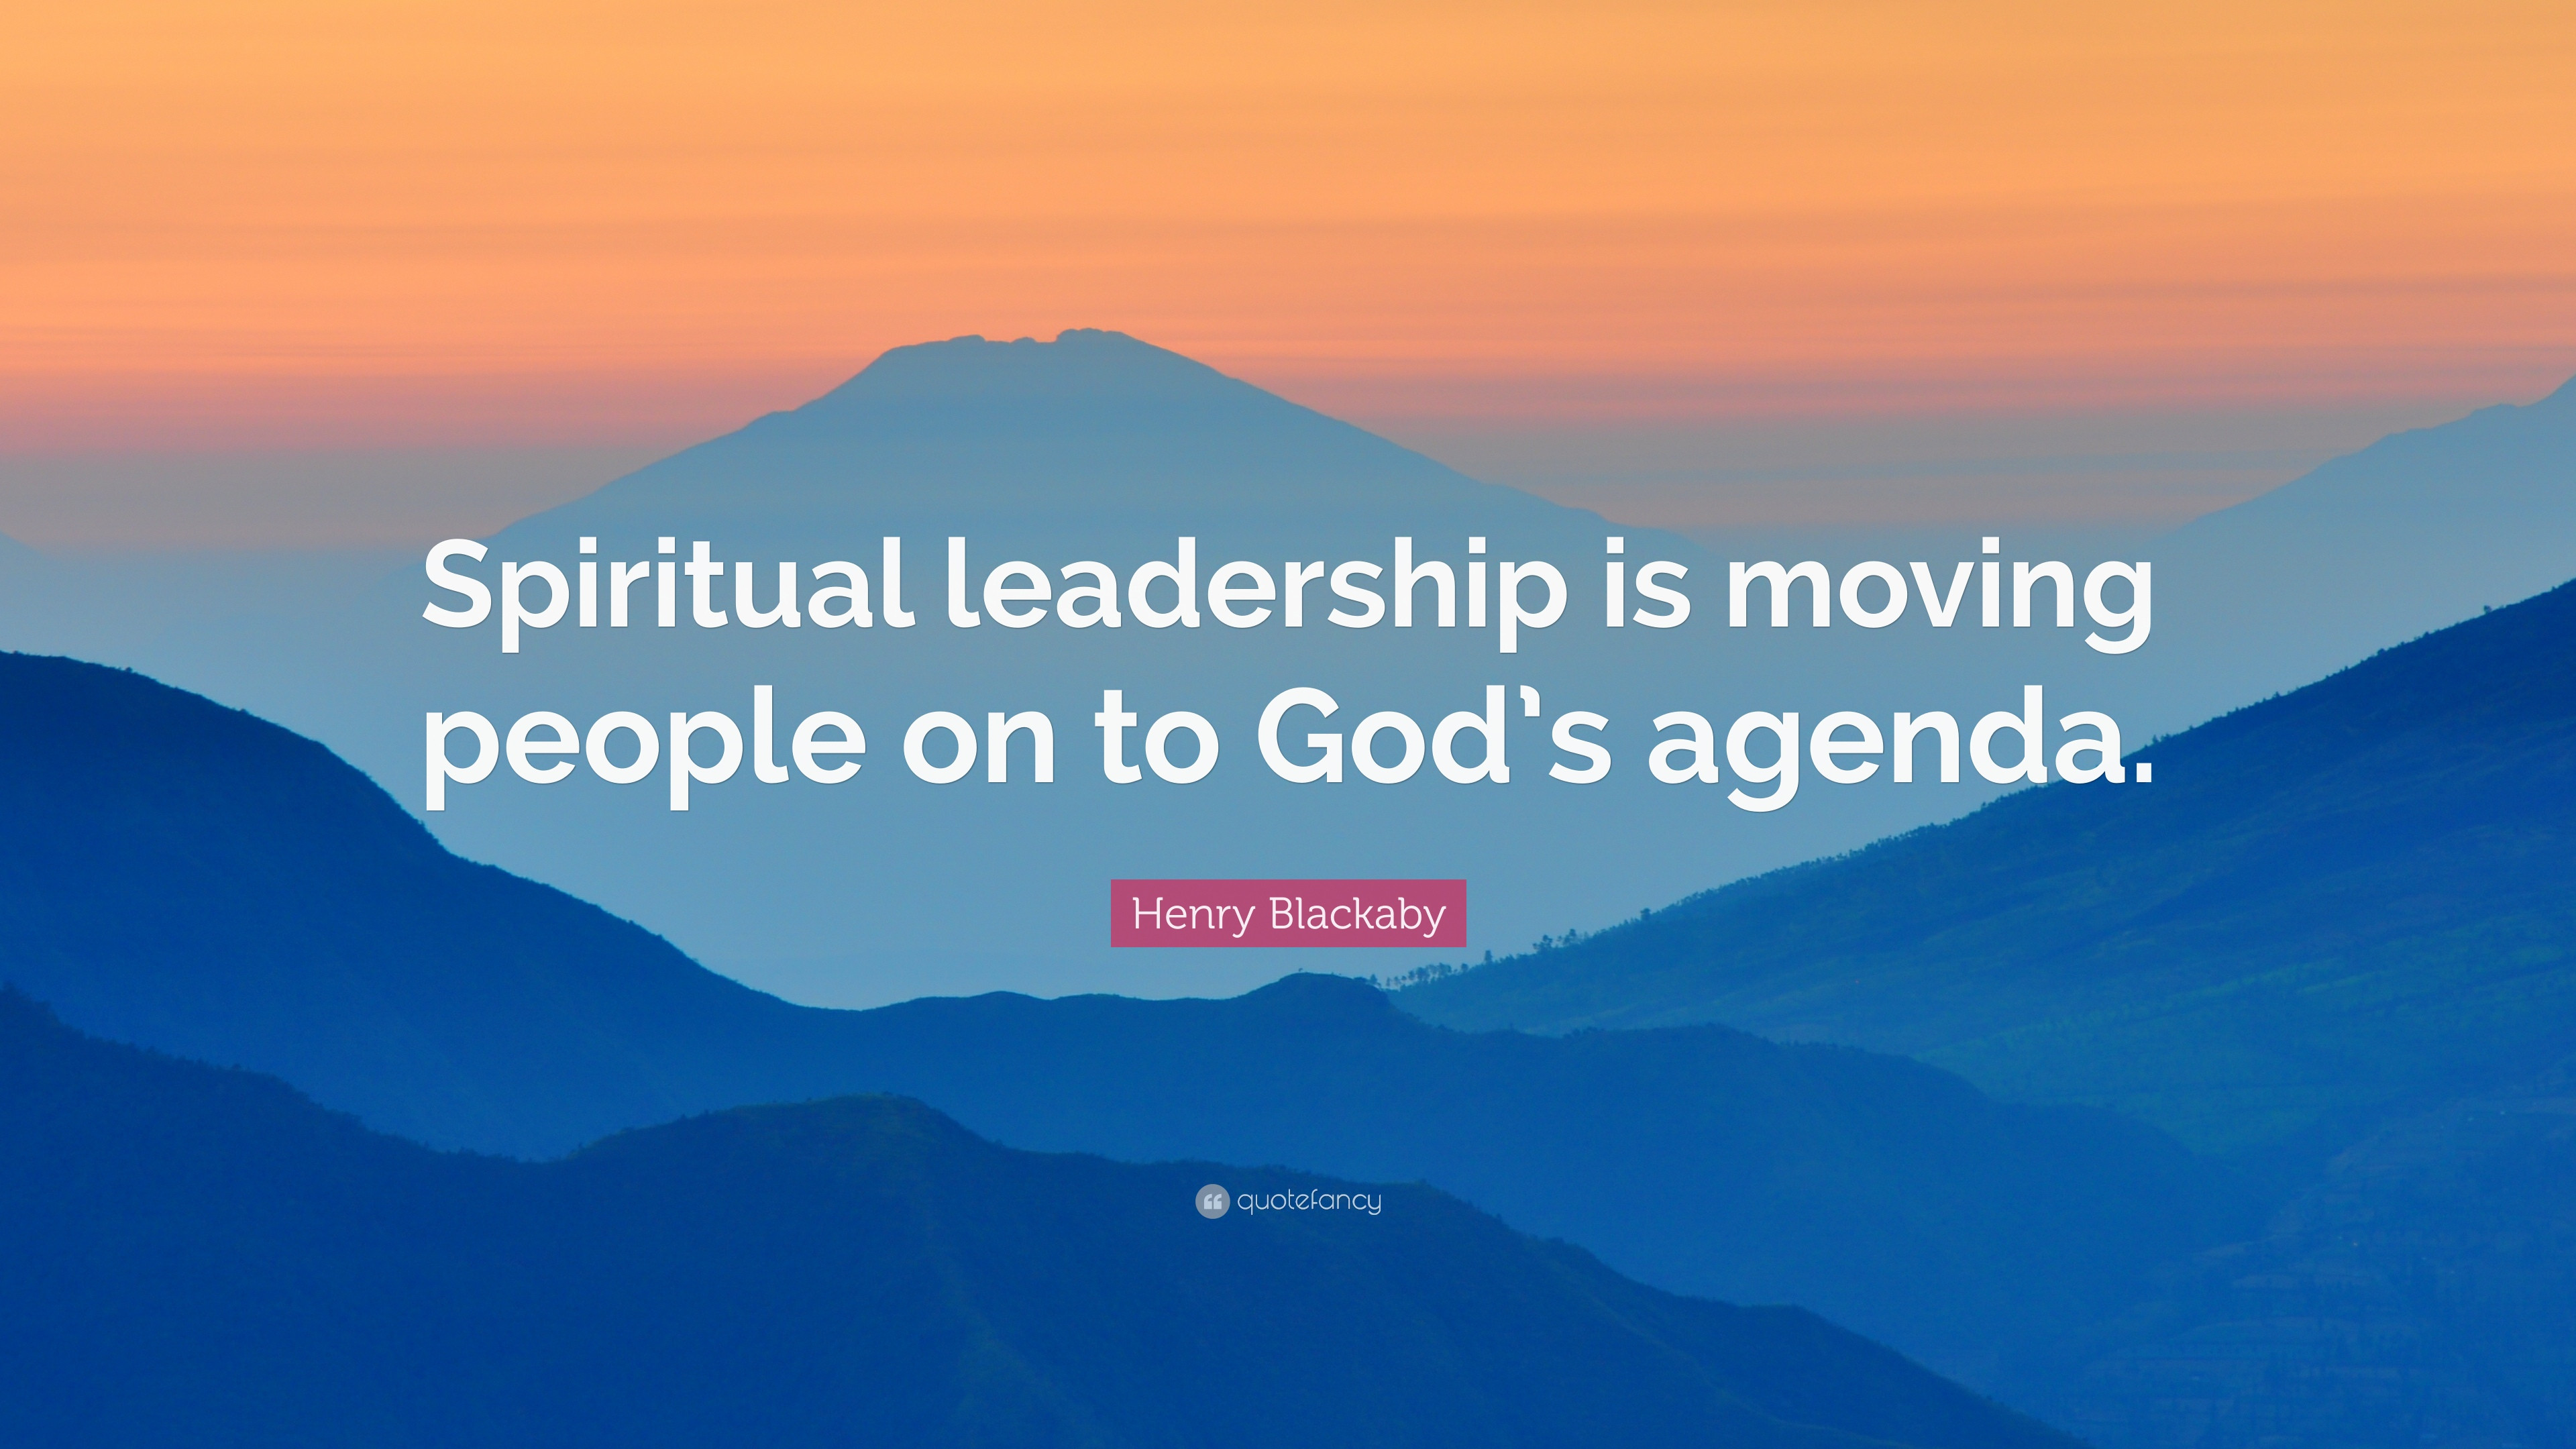 Spiritual Leadership Quotes  Henry Blackaby Quotes 54 wallpapers Quotefancy